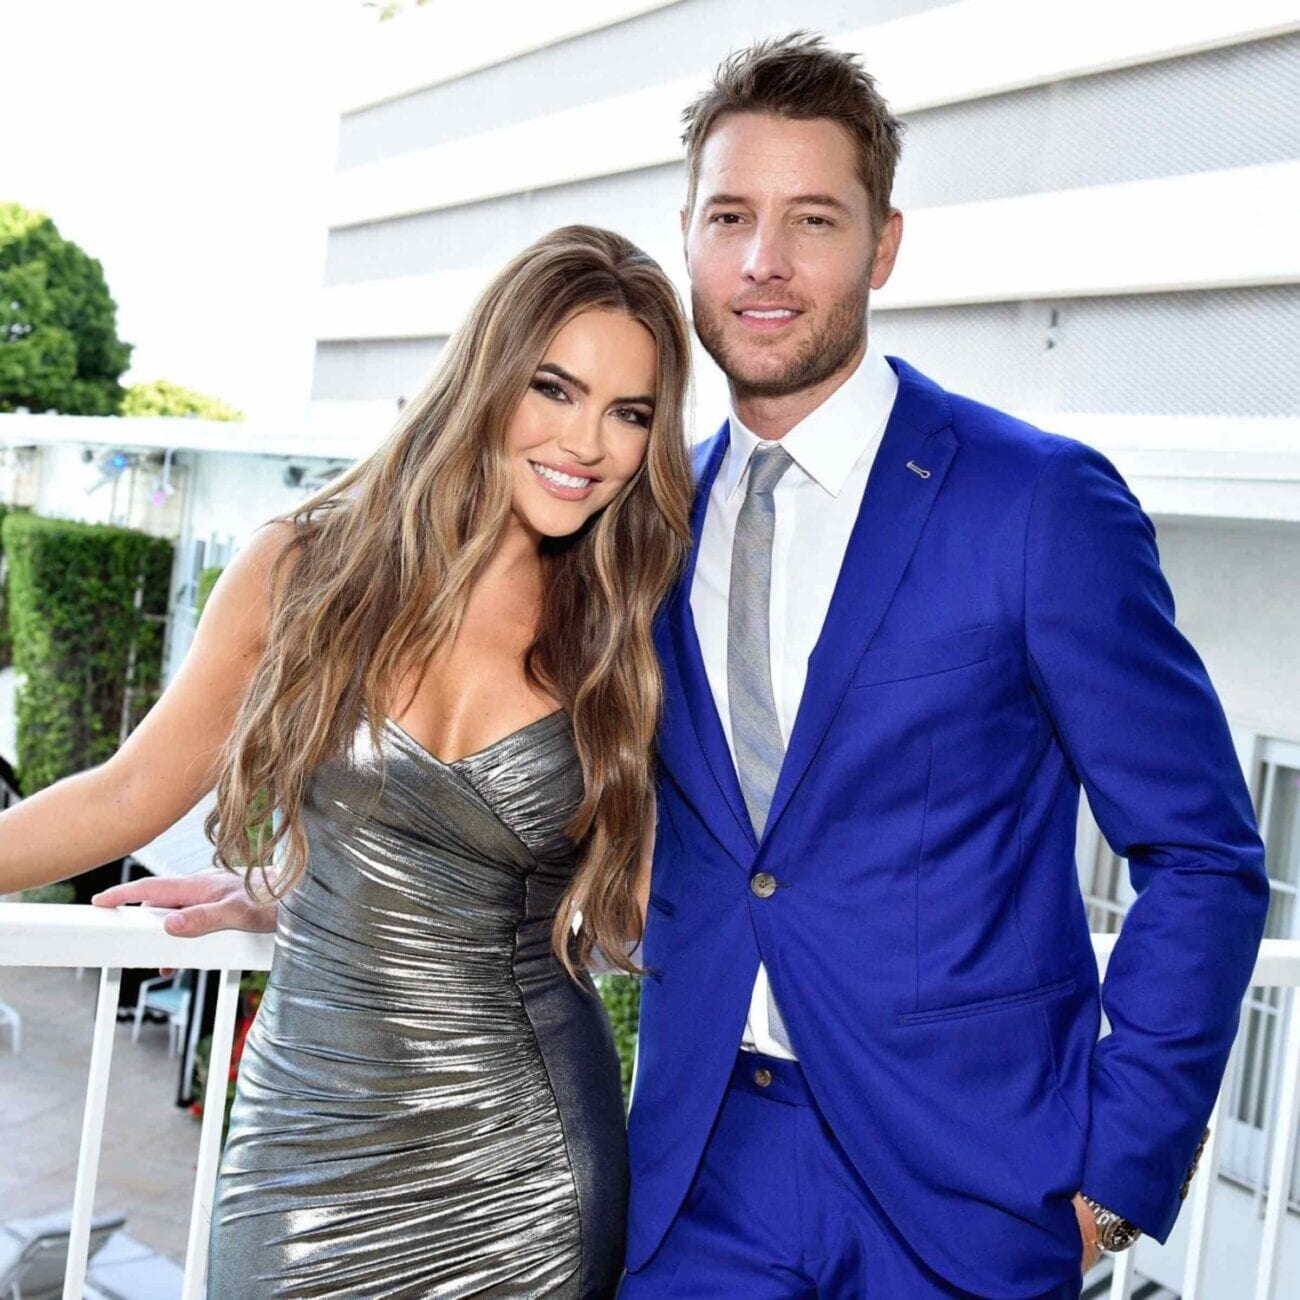 Everyone knows Justin Hartley and Chrishell Stause met while doing soap operas. Why was their movie together kept secret?